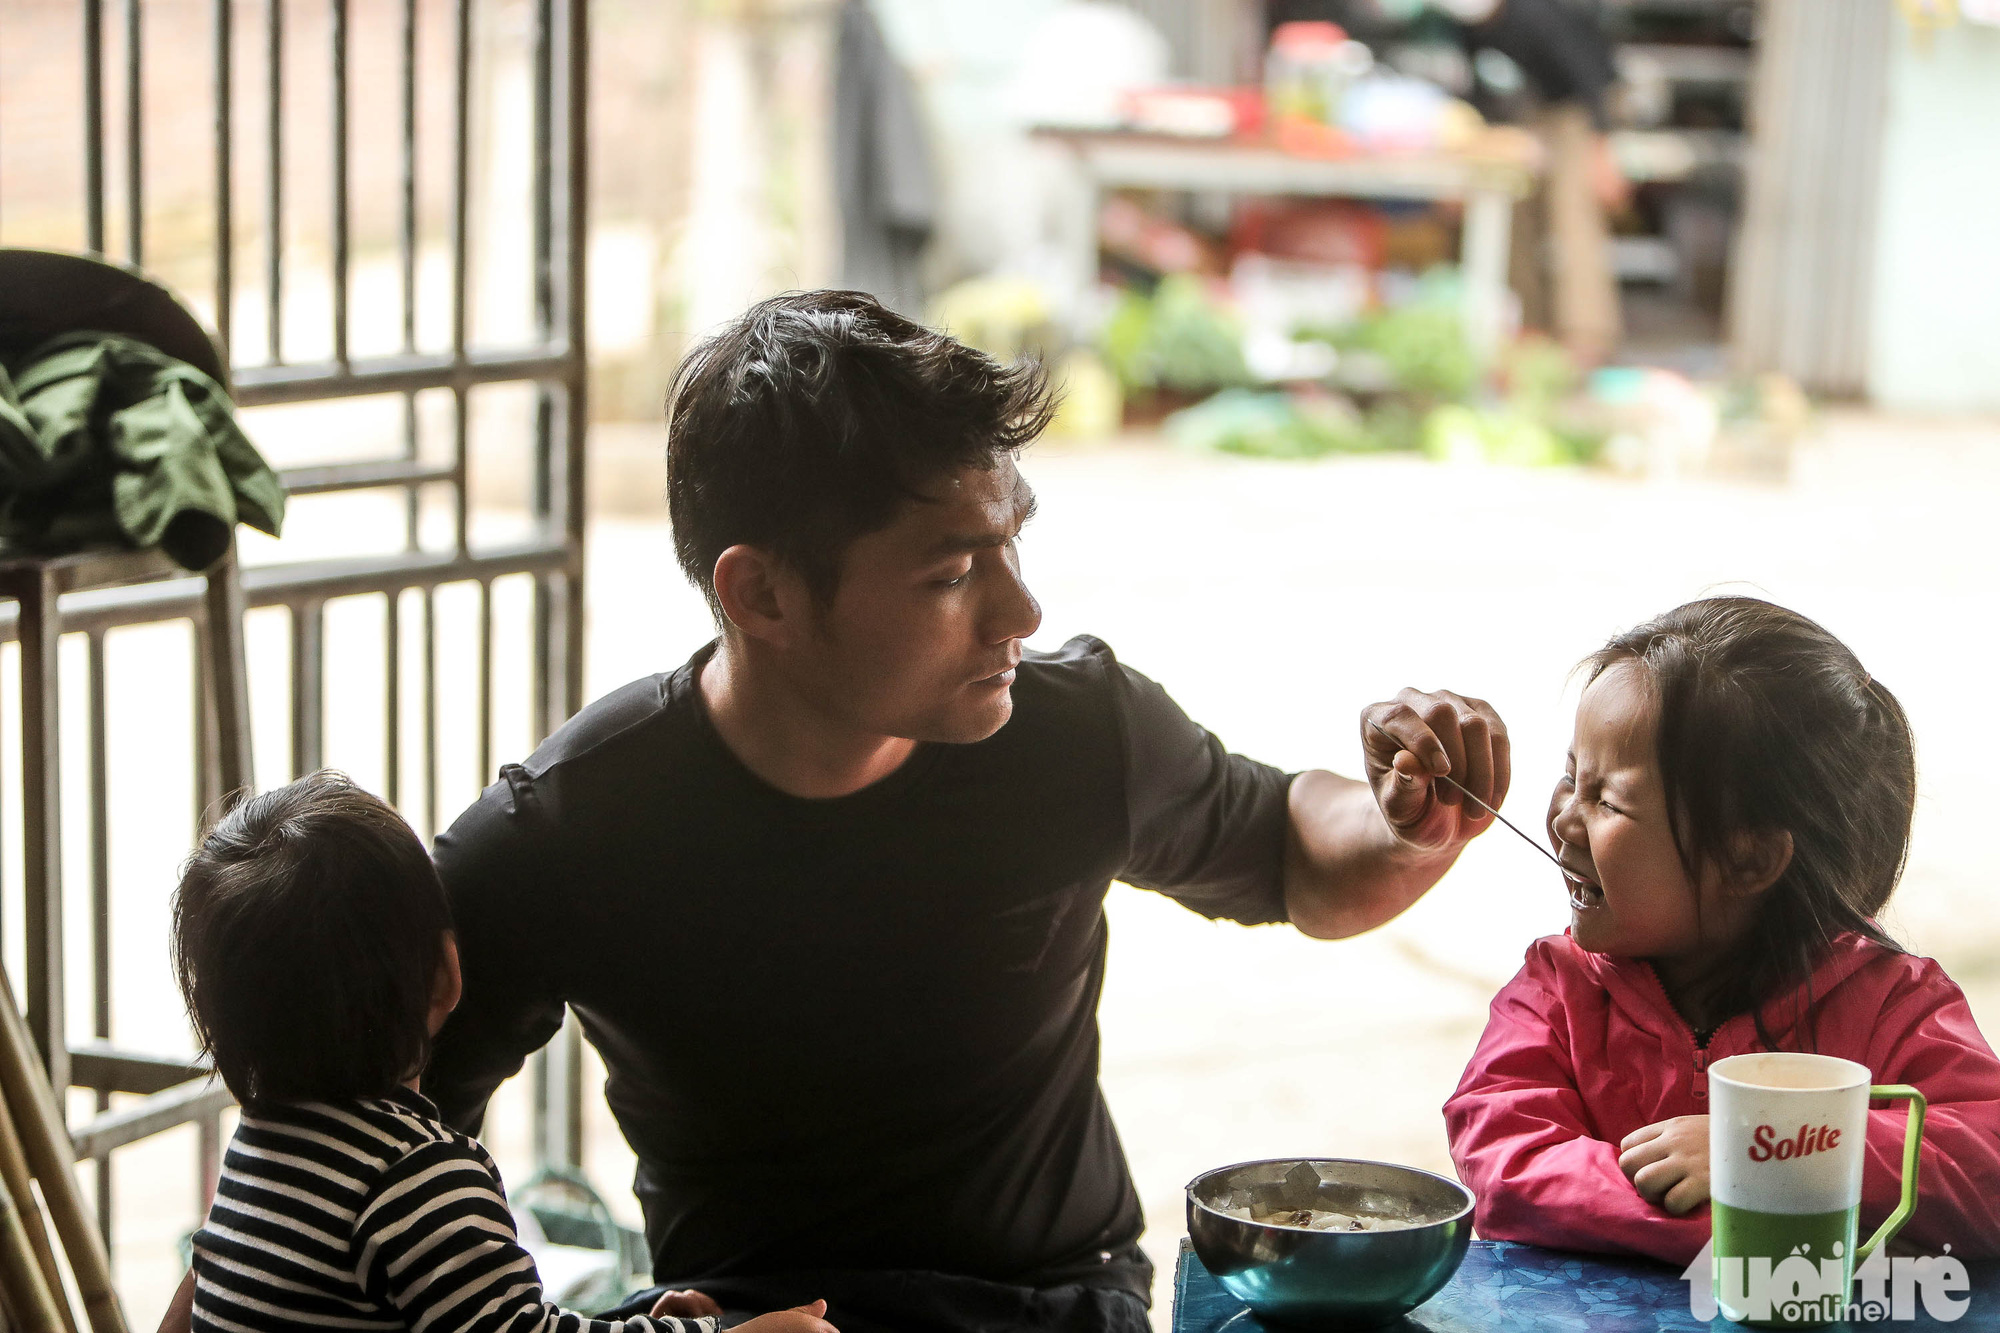 Nguyen Van Huu, a steel factory worker, feeds his children at their home in Son Loi Commune in Binh Xuyen District, Vinh Phuc Province, Vietnam as he is under home quarantine on his company's request in this photo taken on February 11, 2020. Photo: Nguyen Khanh / Tuoi Tre